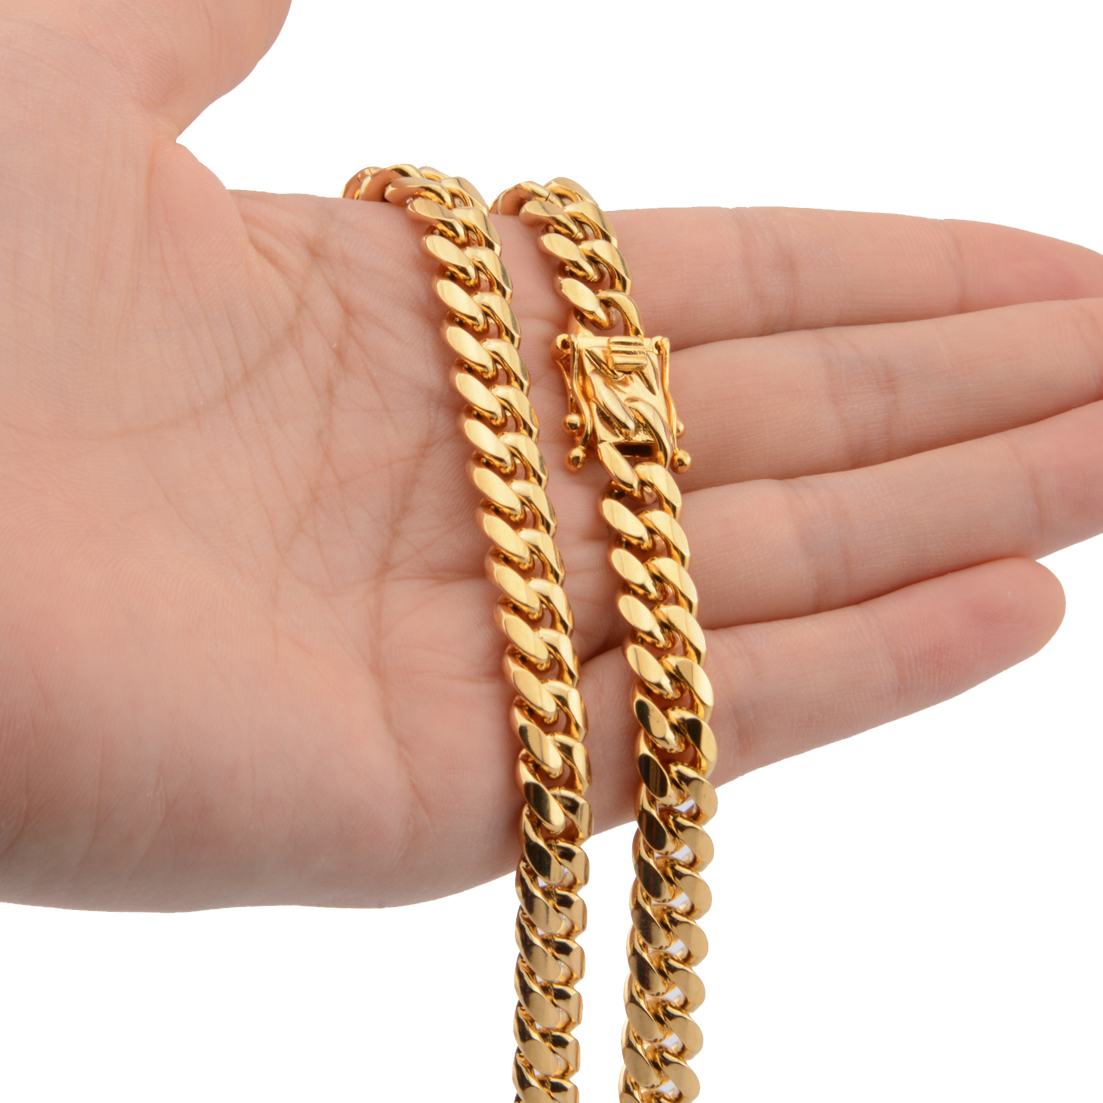 Top Quality 8mm Wide Gold Color For Men 39 s Necklace Or Bracelet 7 40 inch Stainless Steel Miami Curb Link Chain Jewelry in Chain Necklaces from Jewelry amp Accessories